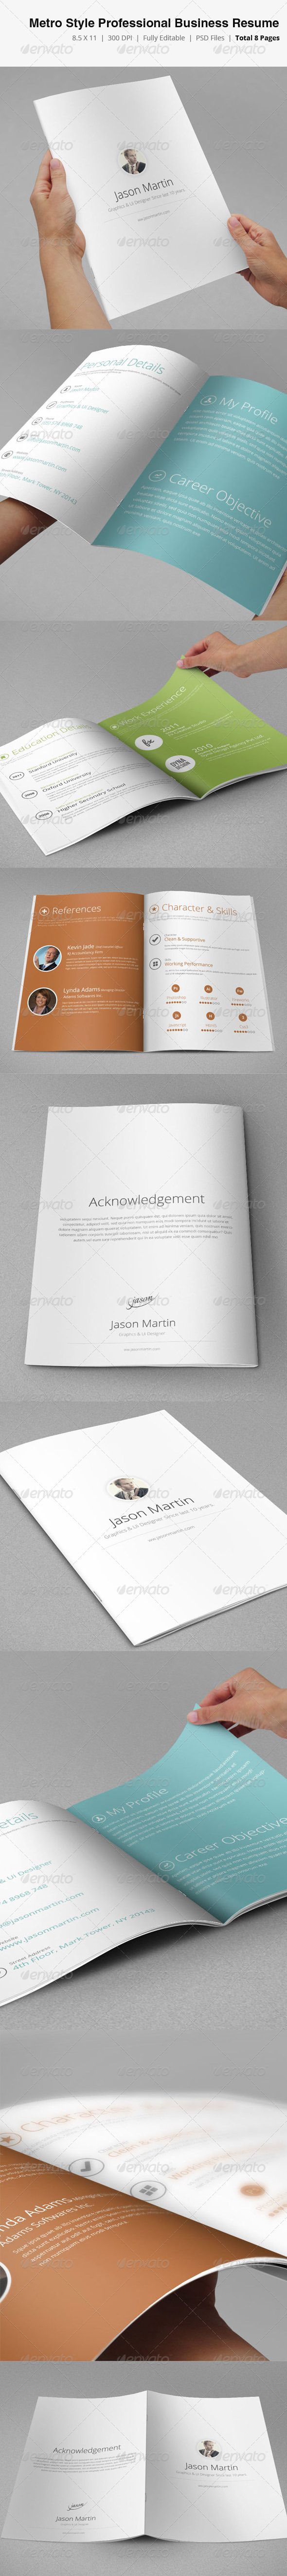 GraphicRiver Metro Style Professional Business Resume 3669174